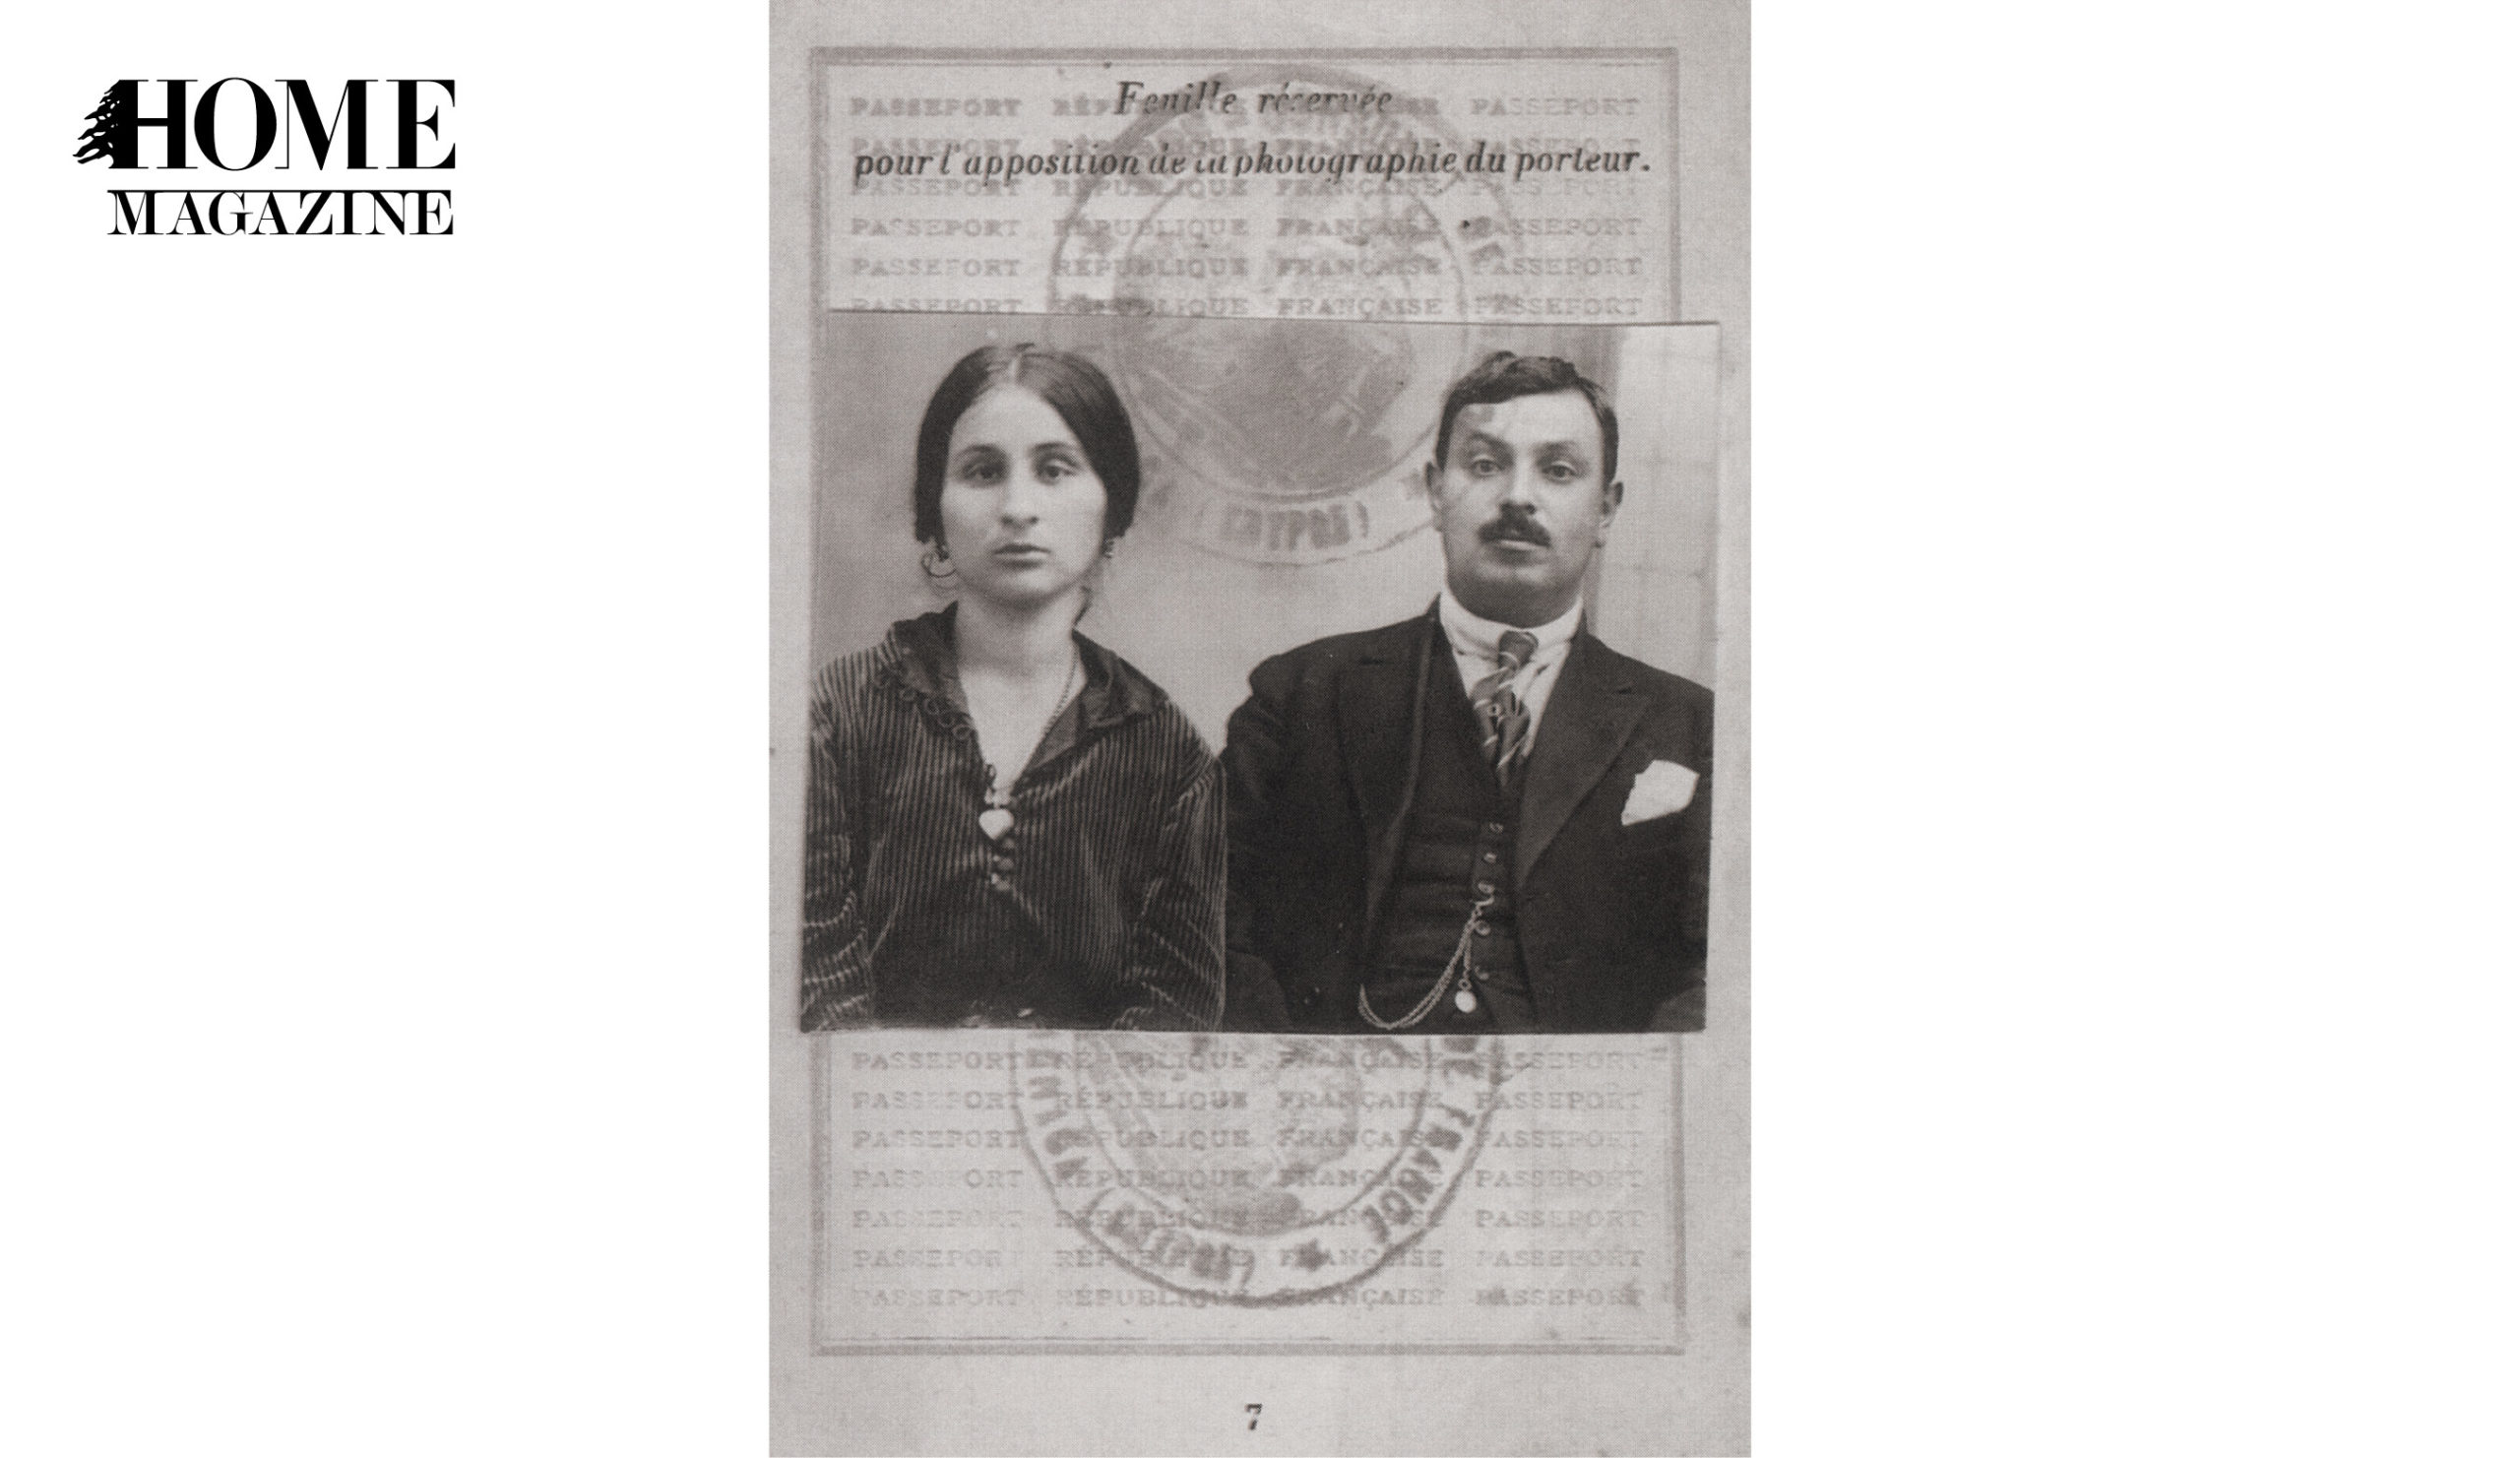 Picture of a man and woman in black and white